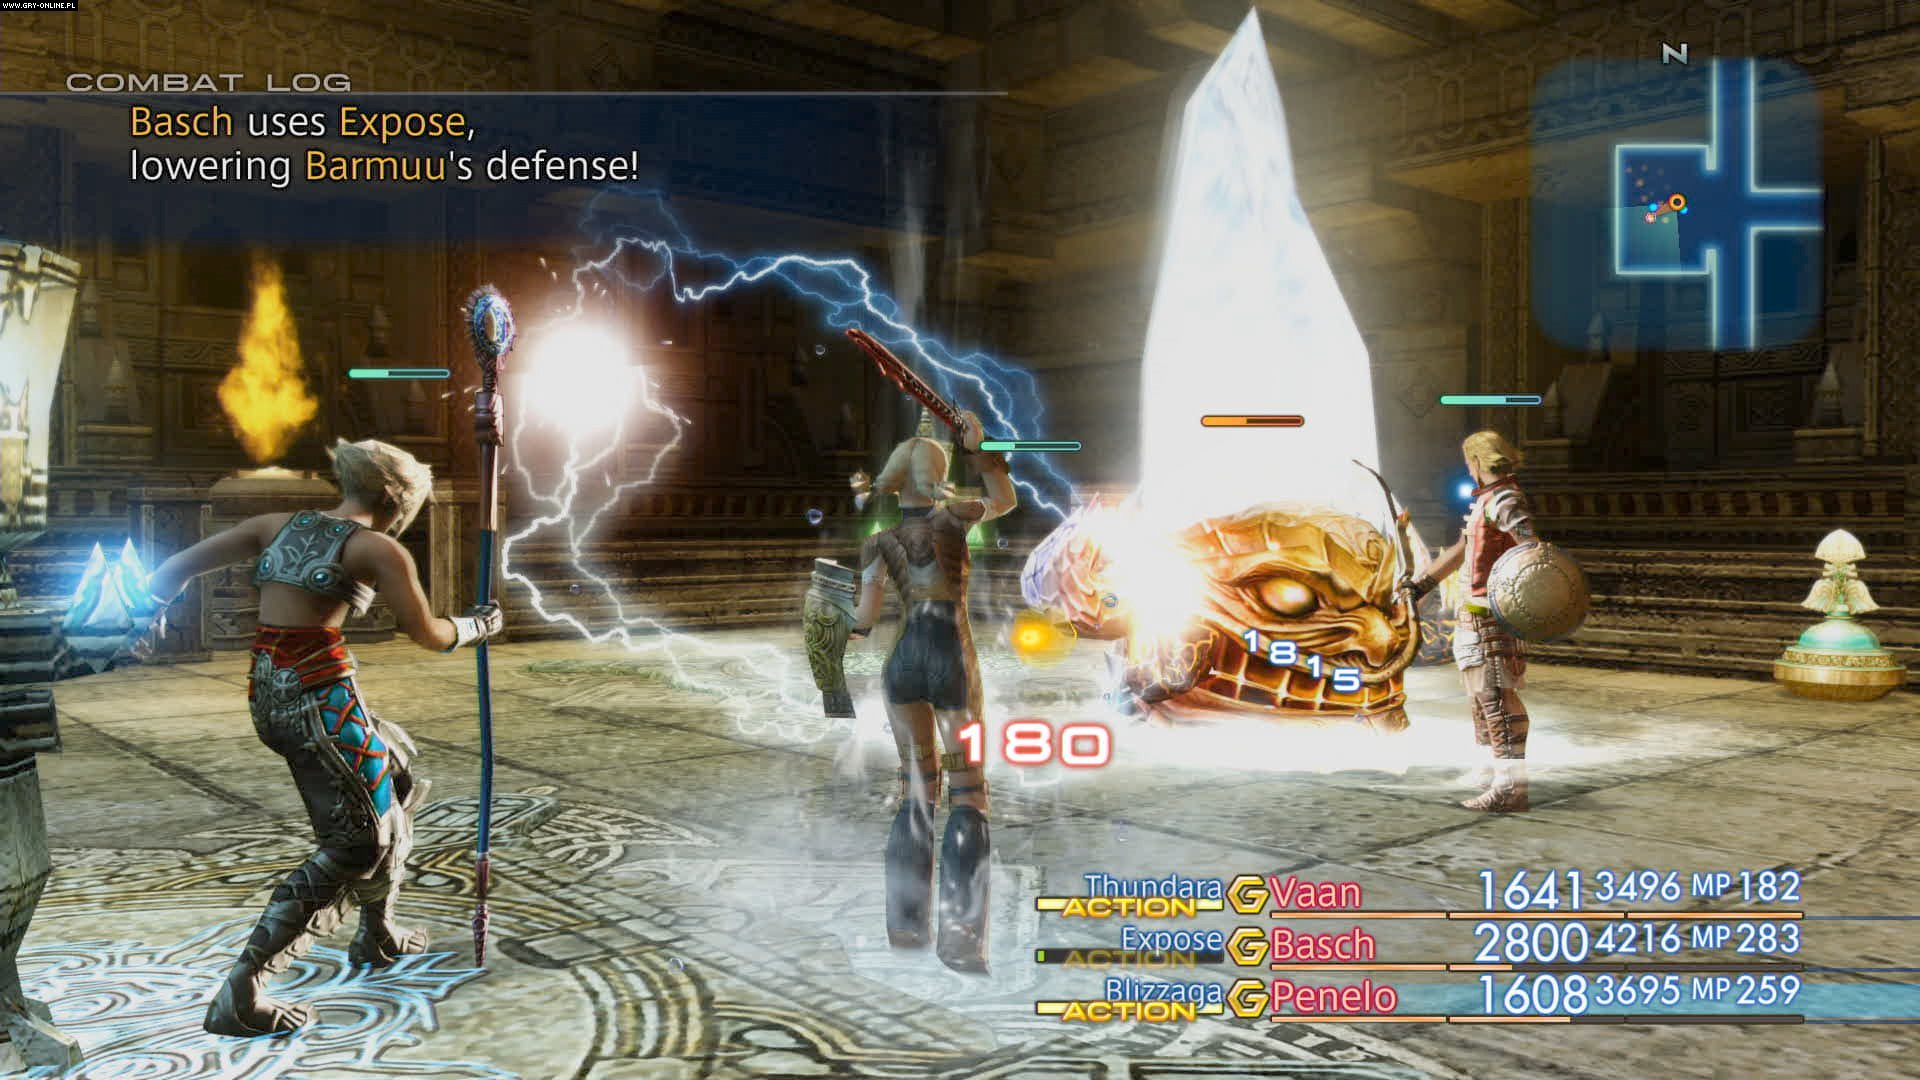 Final Fantasy XII: The Zodiac Age PS4 Gry Screen 52/71, Square-Enix / Eidos